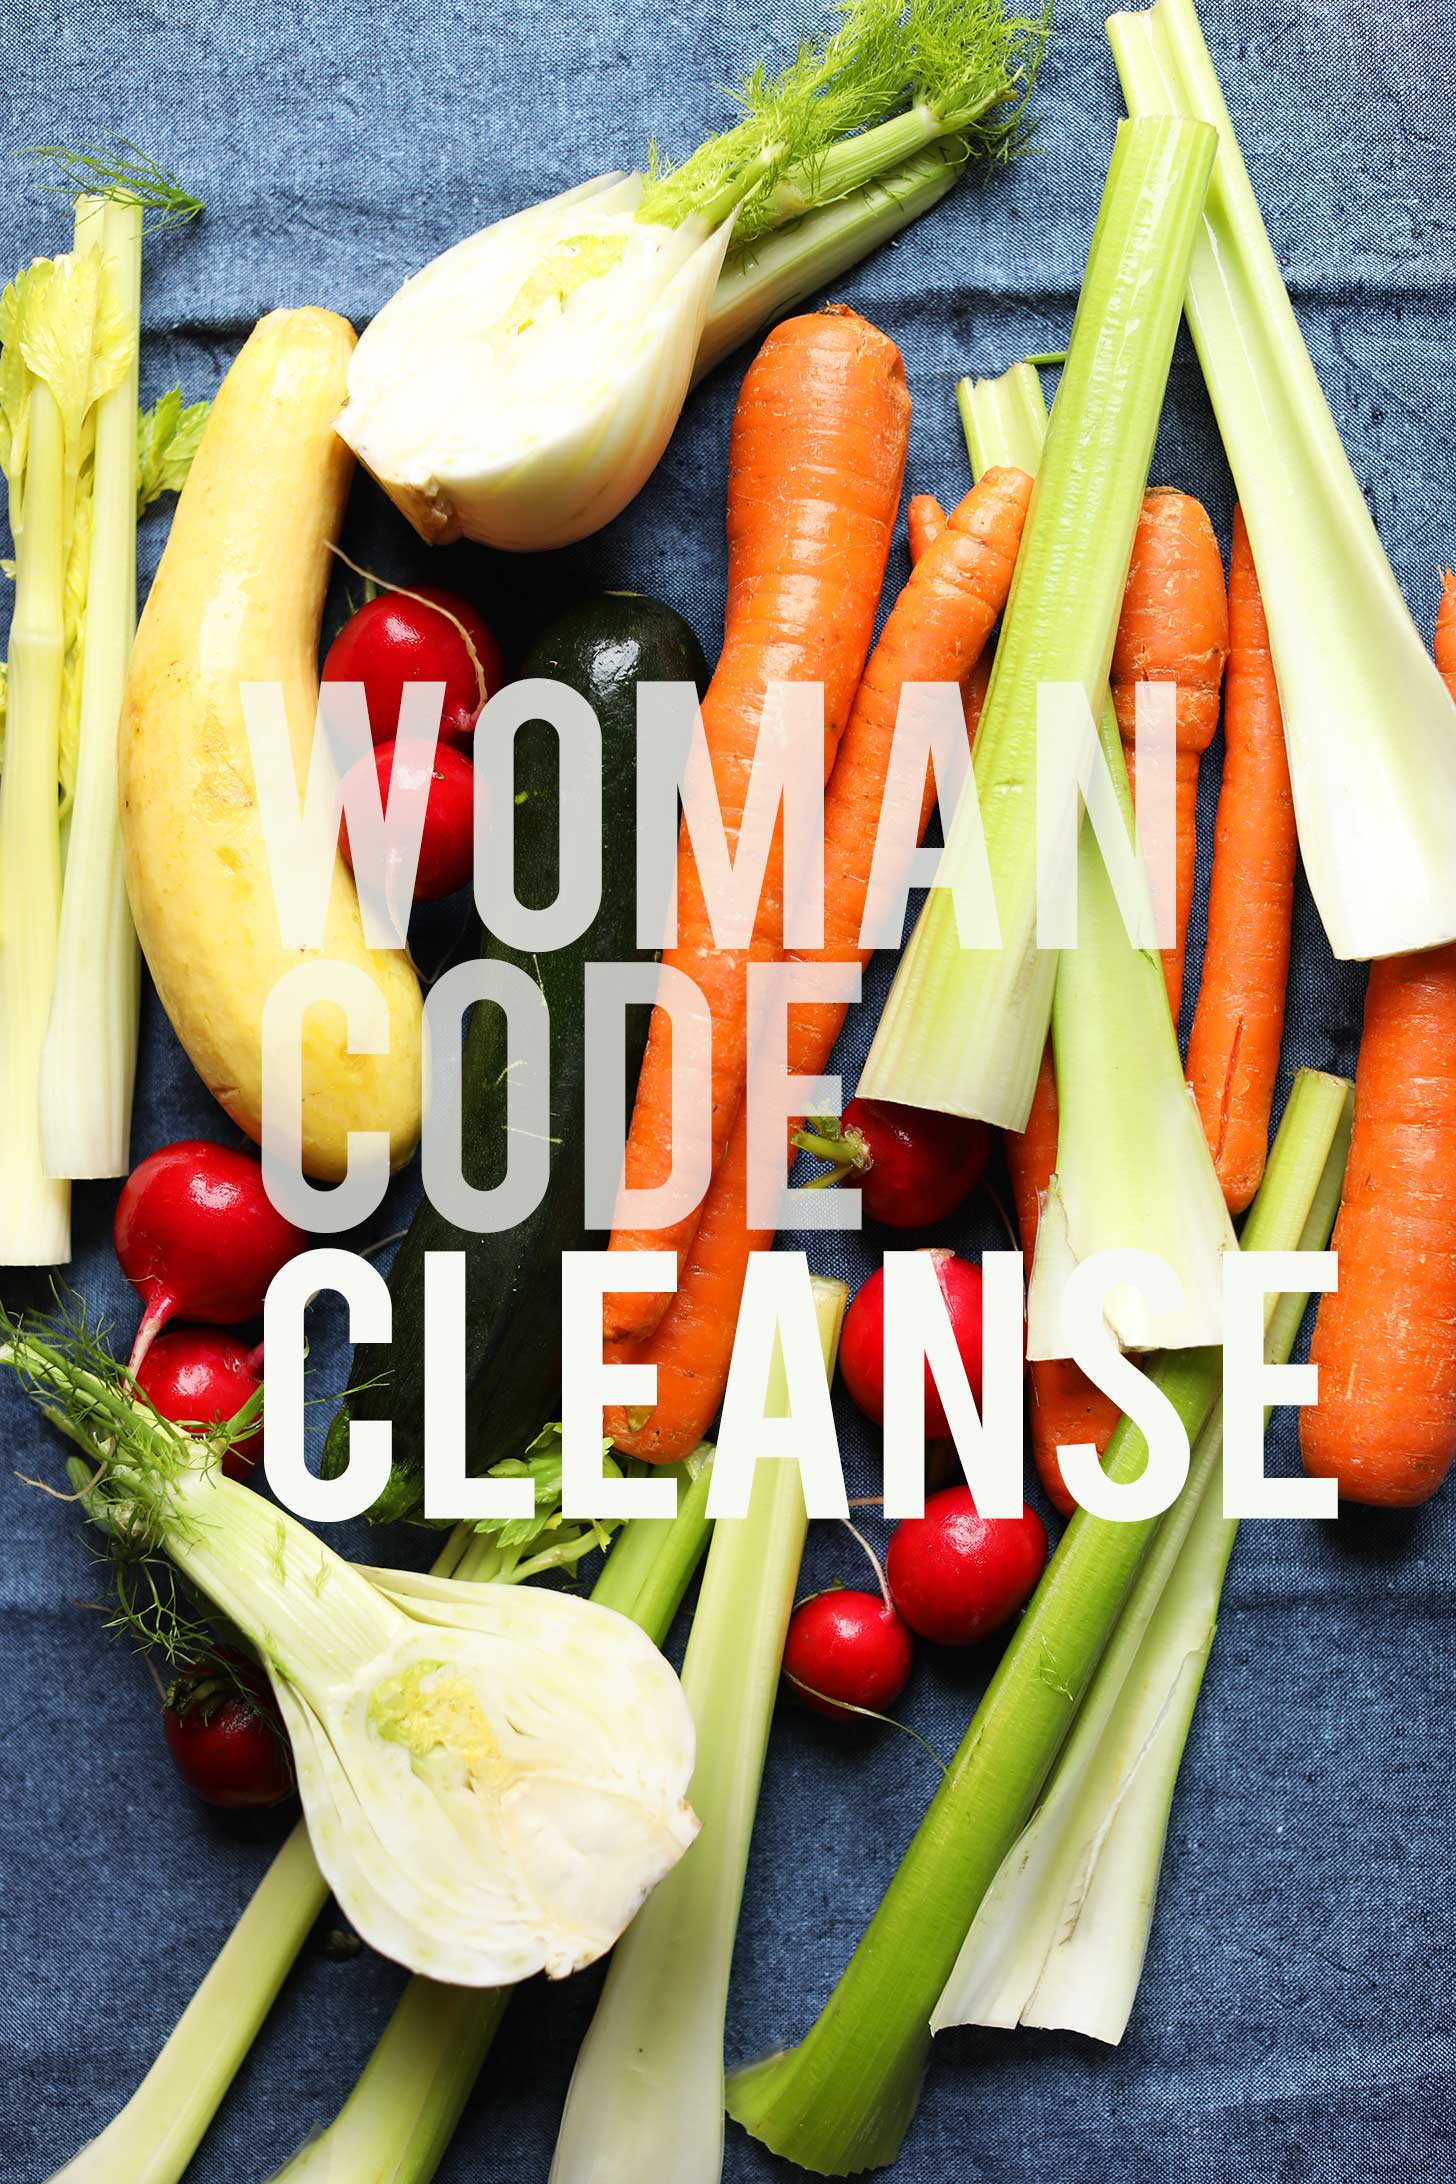 Fresh vegetables overlaid with text saying Woman Code Cleanse